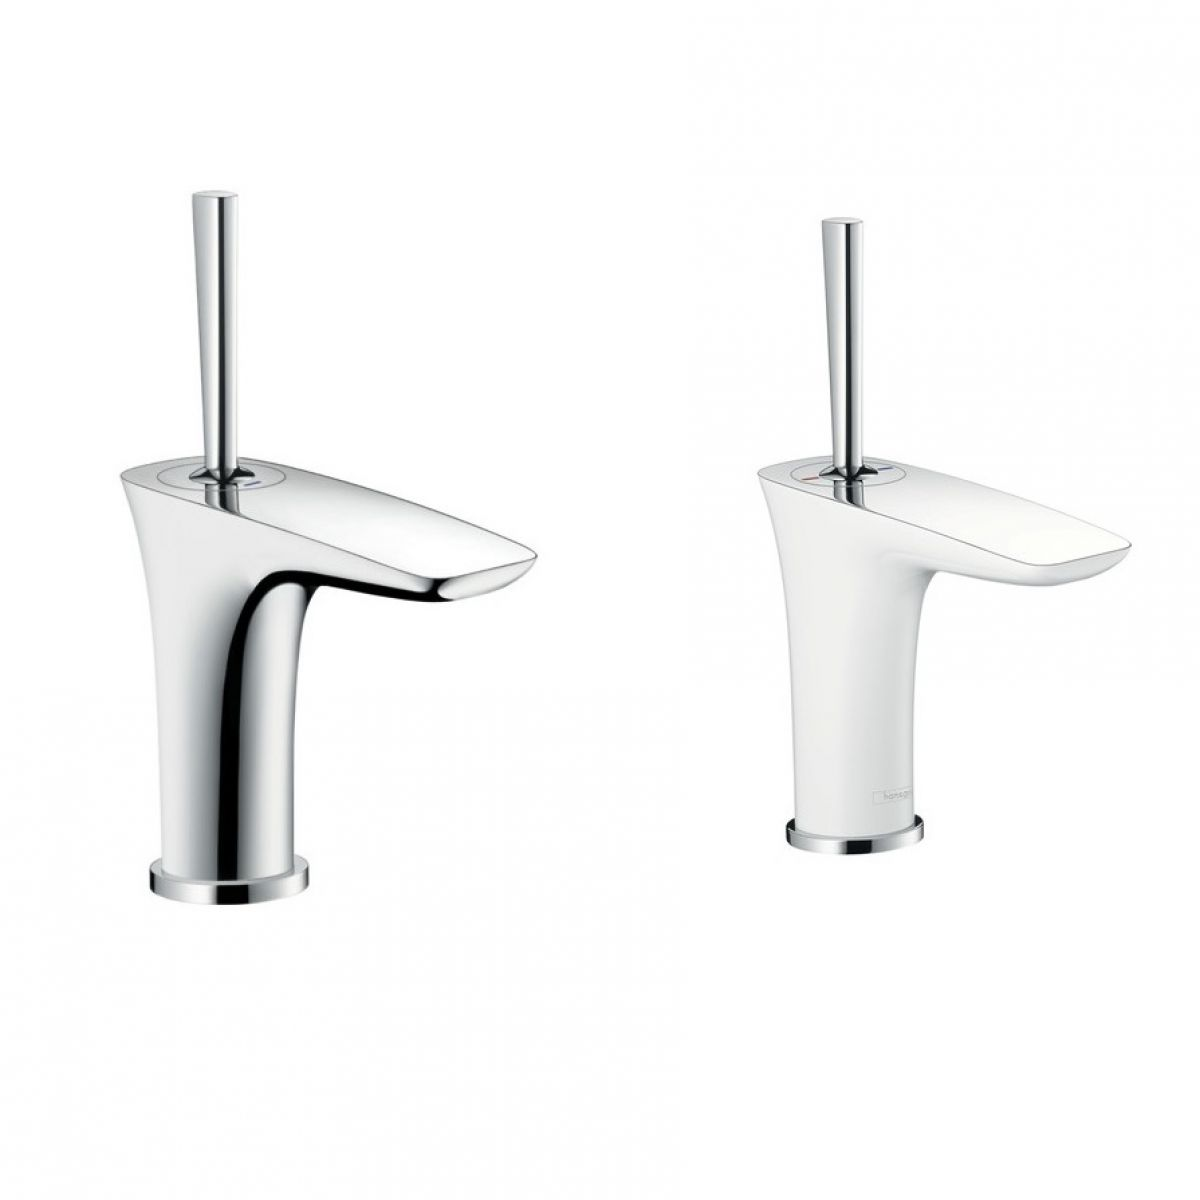 hansgrohe puravida 100 basin mixer uk bathrooms. Black Bedroom Furniture Sets. Home Design Ideas